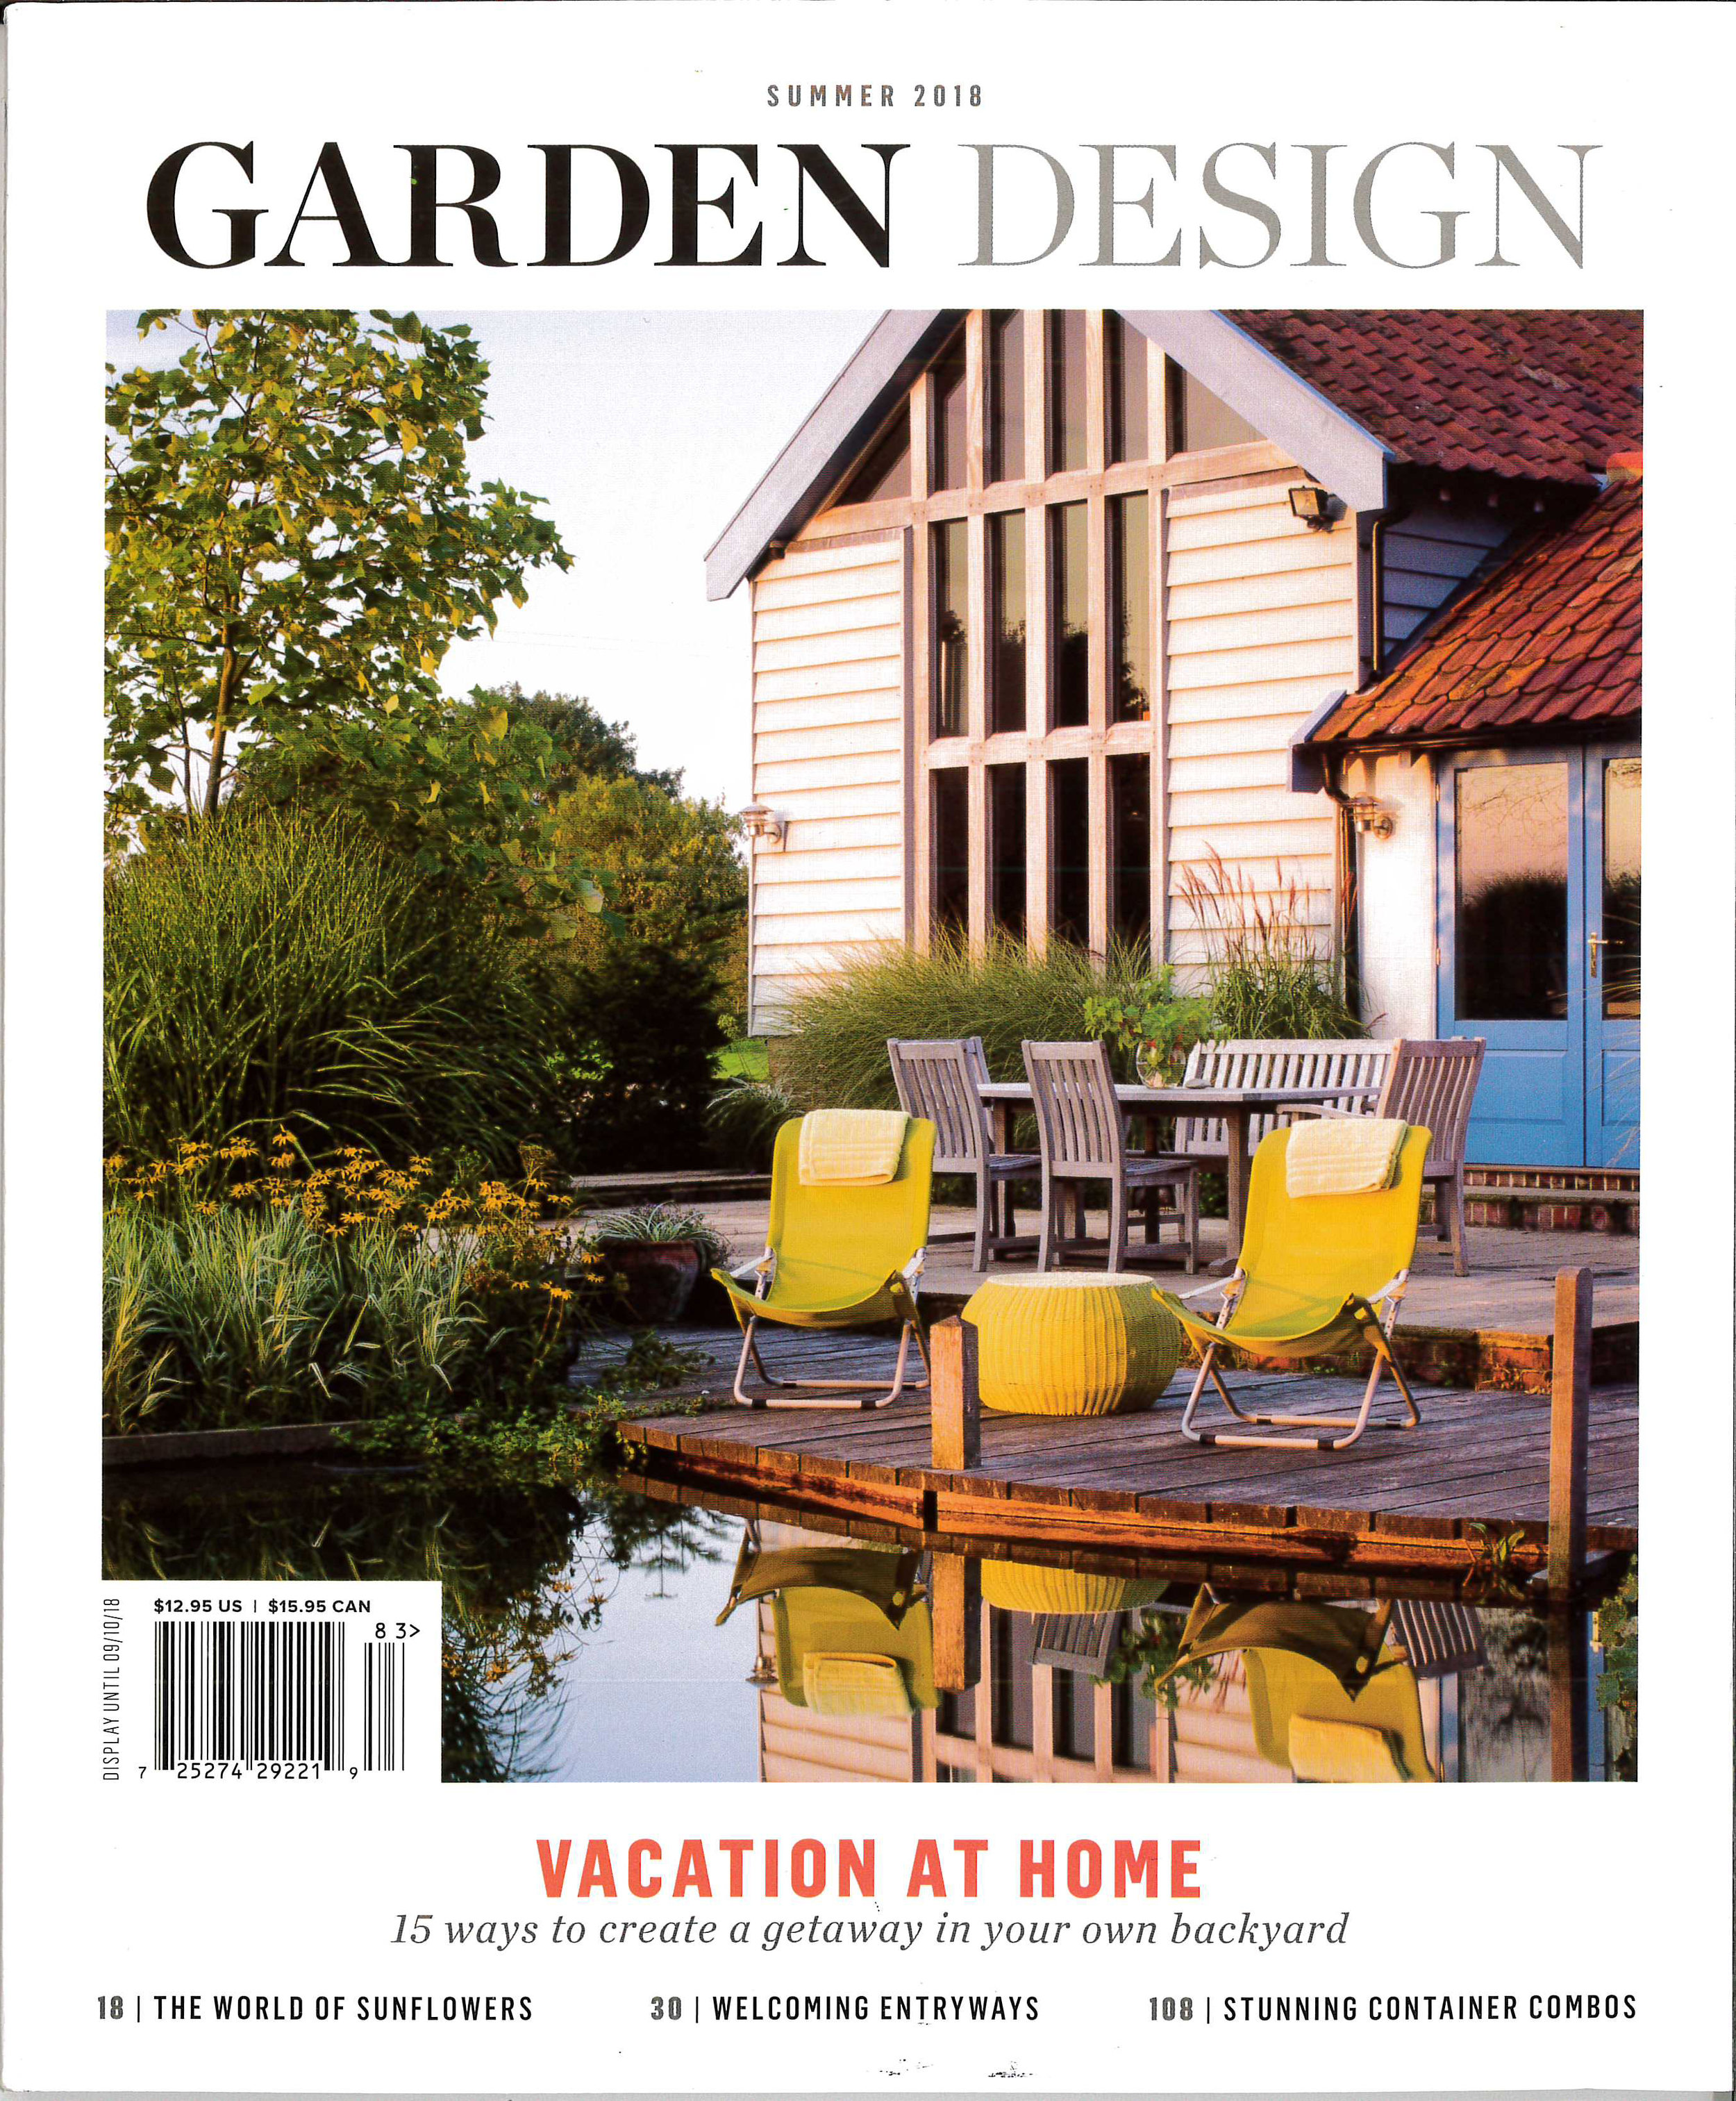 Garden-Design_2018_Summer_Cover.jpg